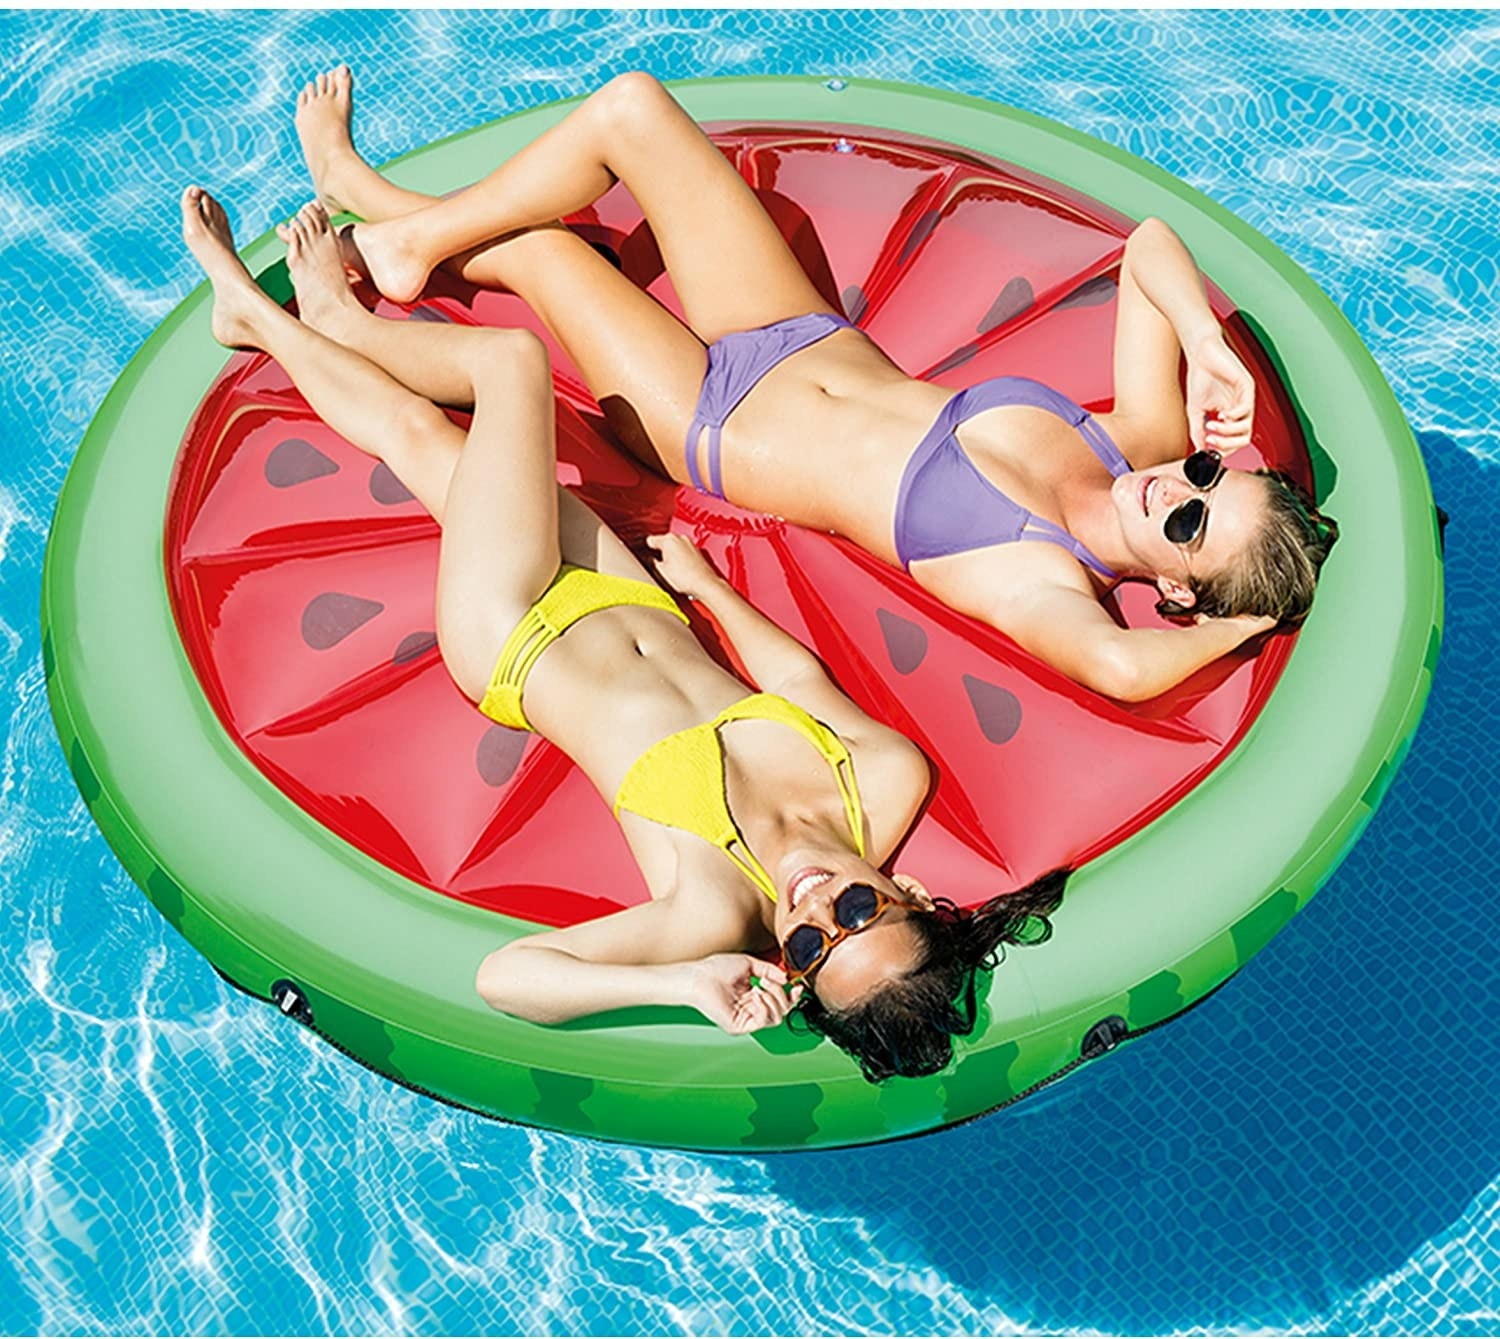 two models on a watermelon pool float